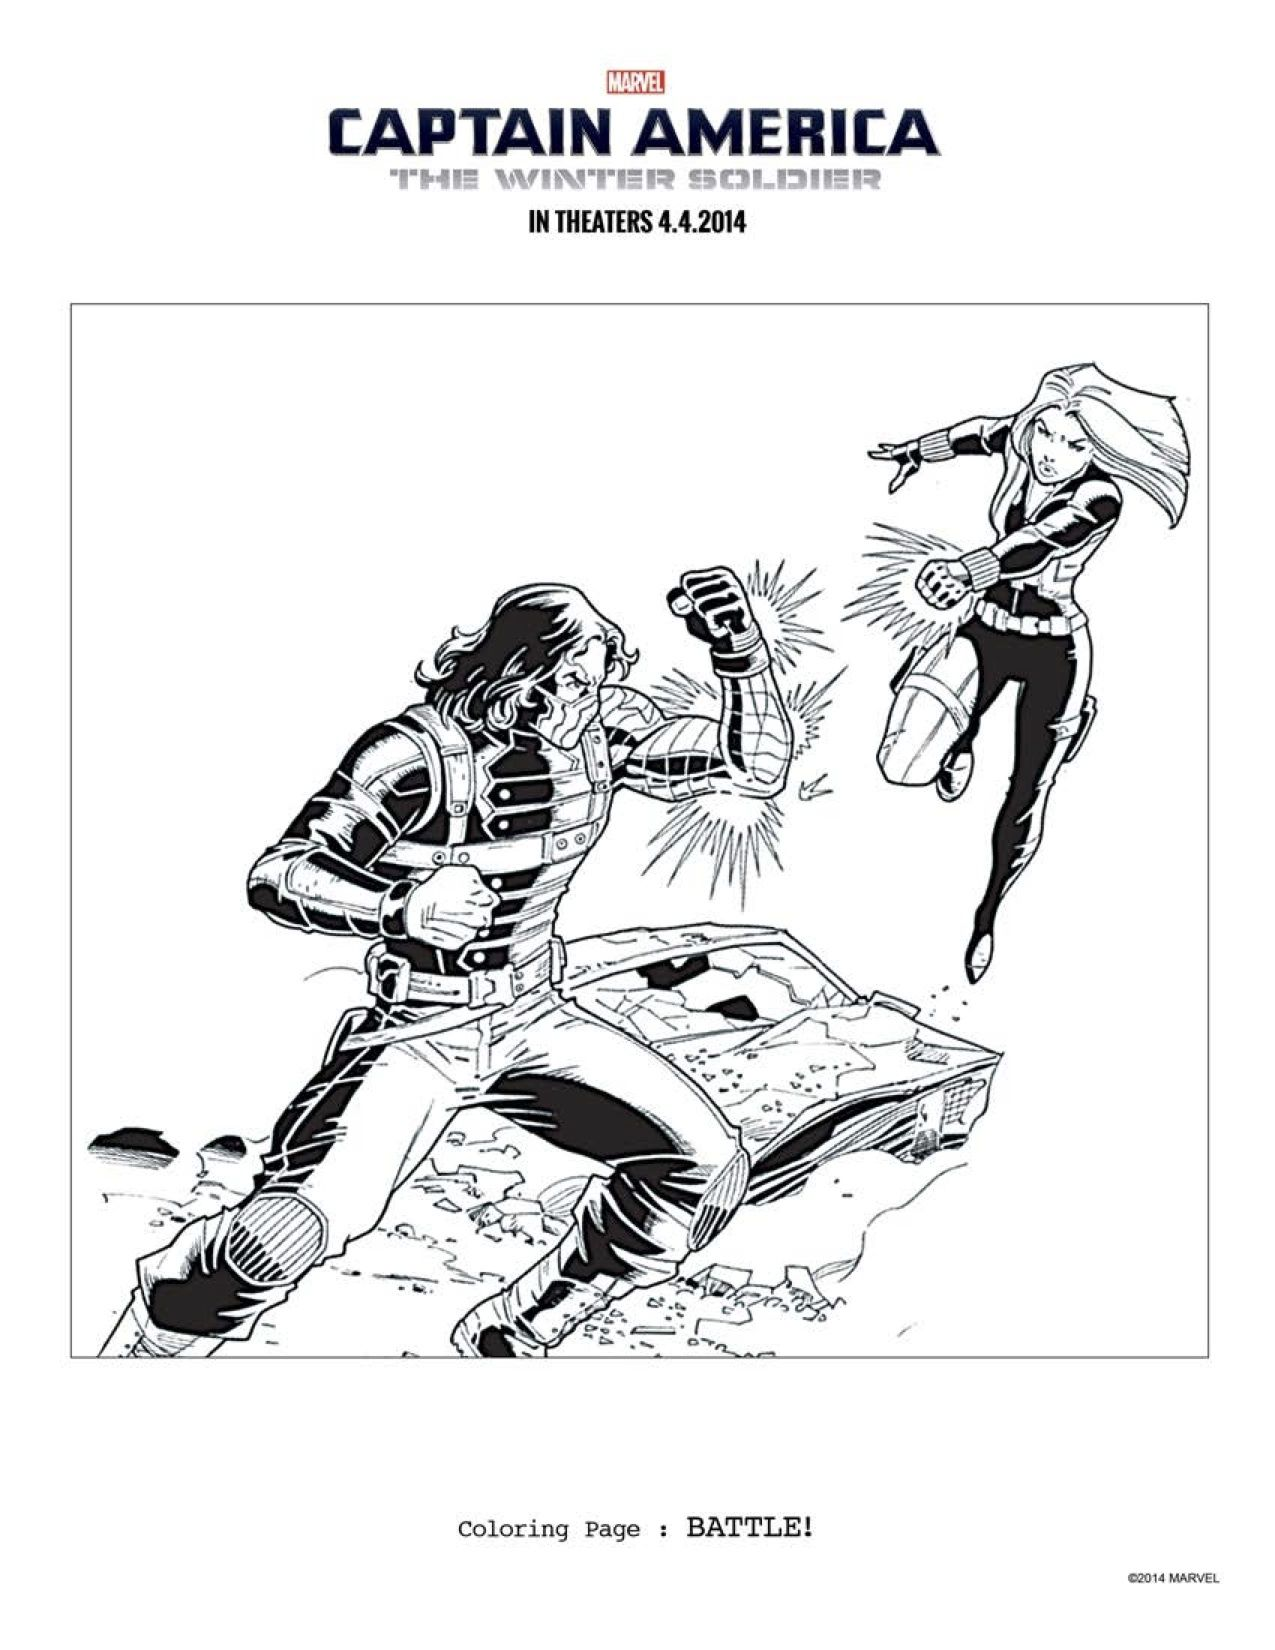 Gratis Ausmalbilder Winter : 8 Captain America The Winter Soldier Coloring Sheets To Keep